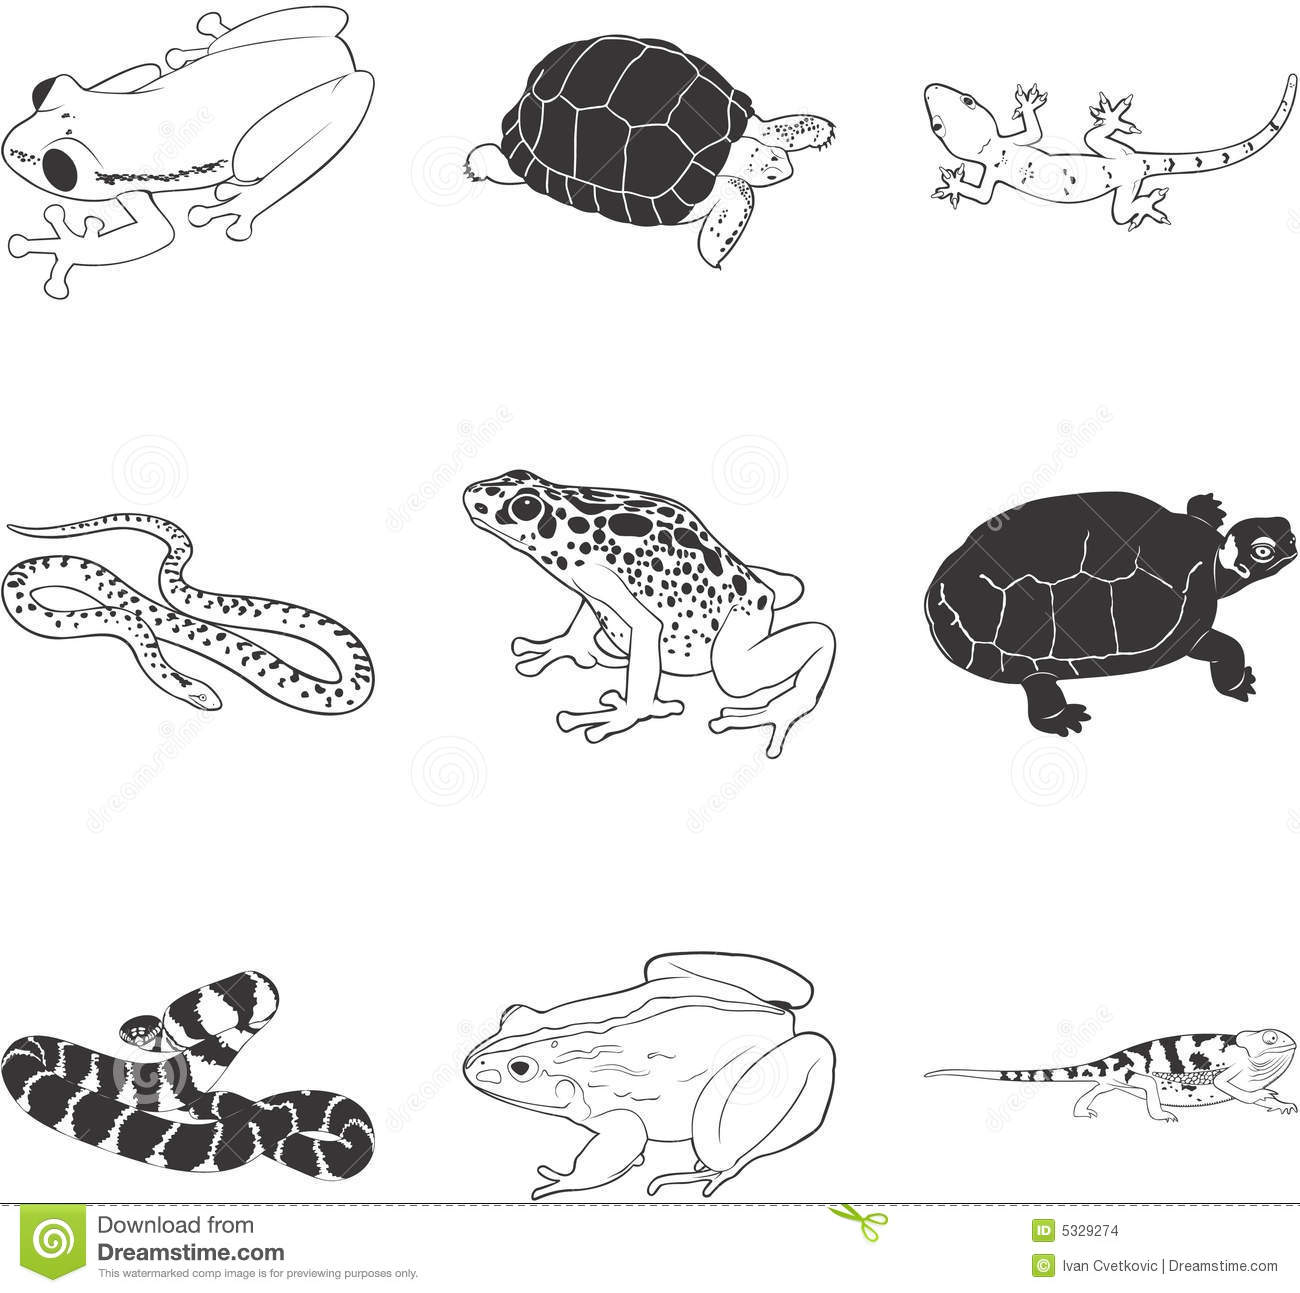 Amphibians and reptiles stock vector. Illustration of ...